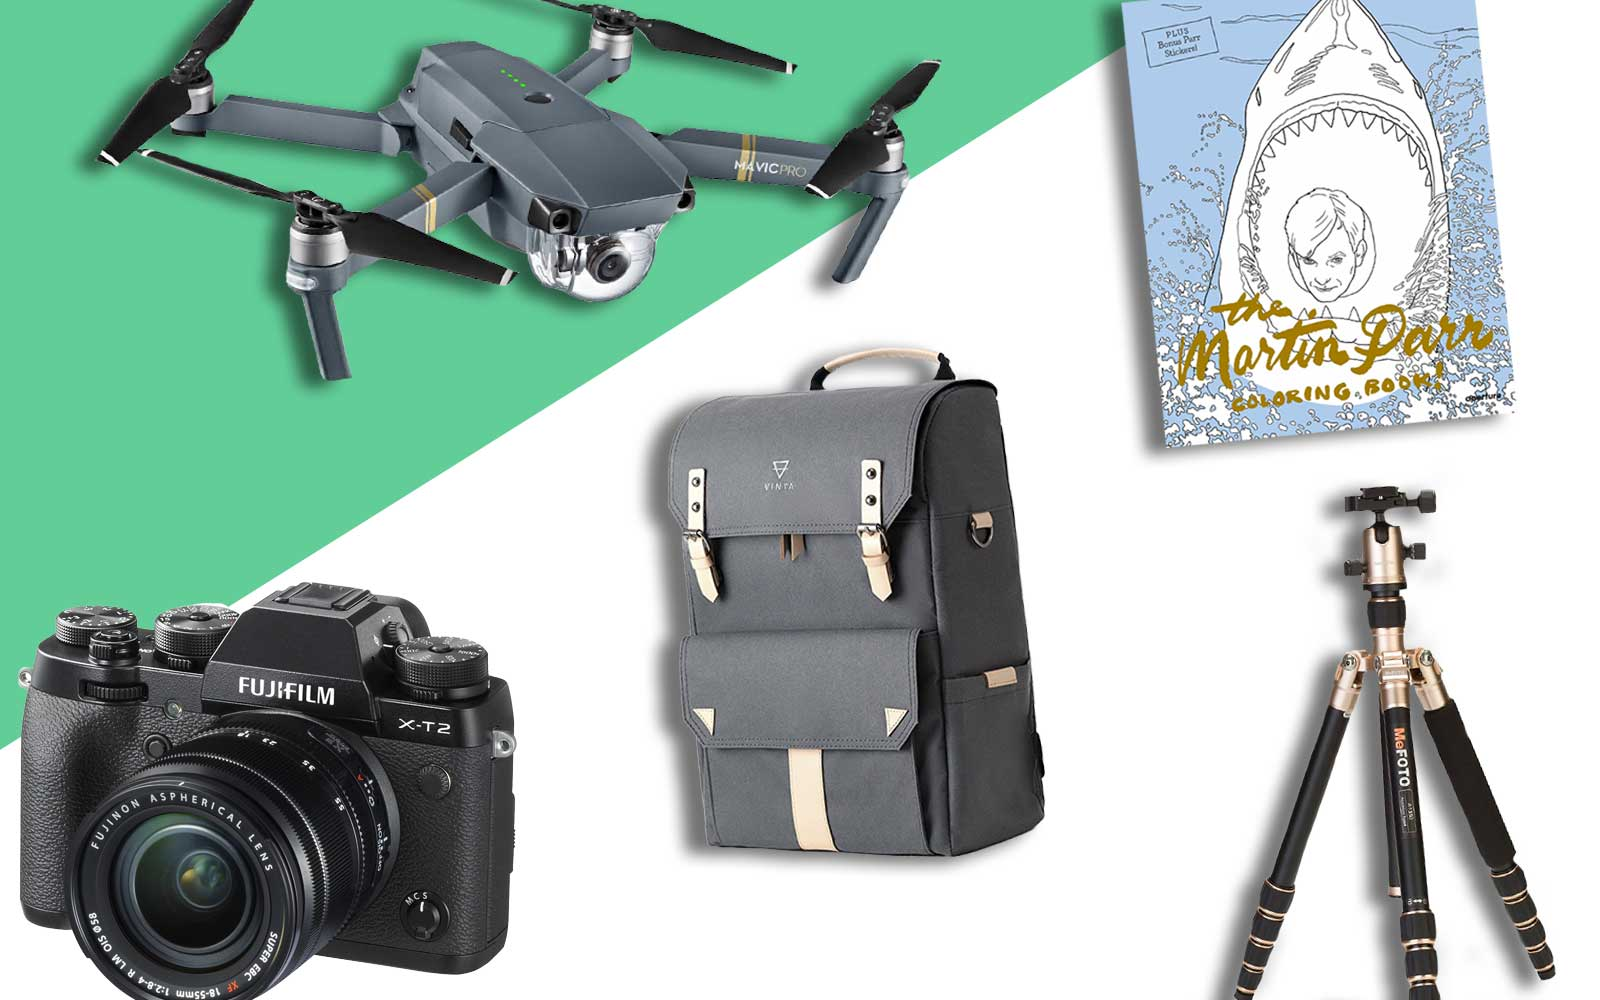 The Best Gifts for Photographers